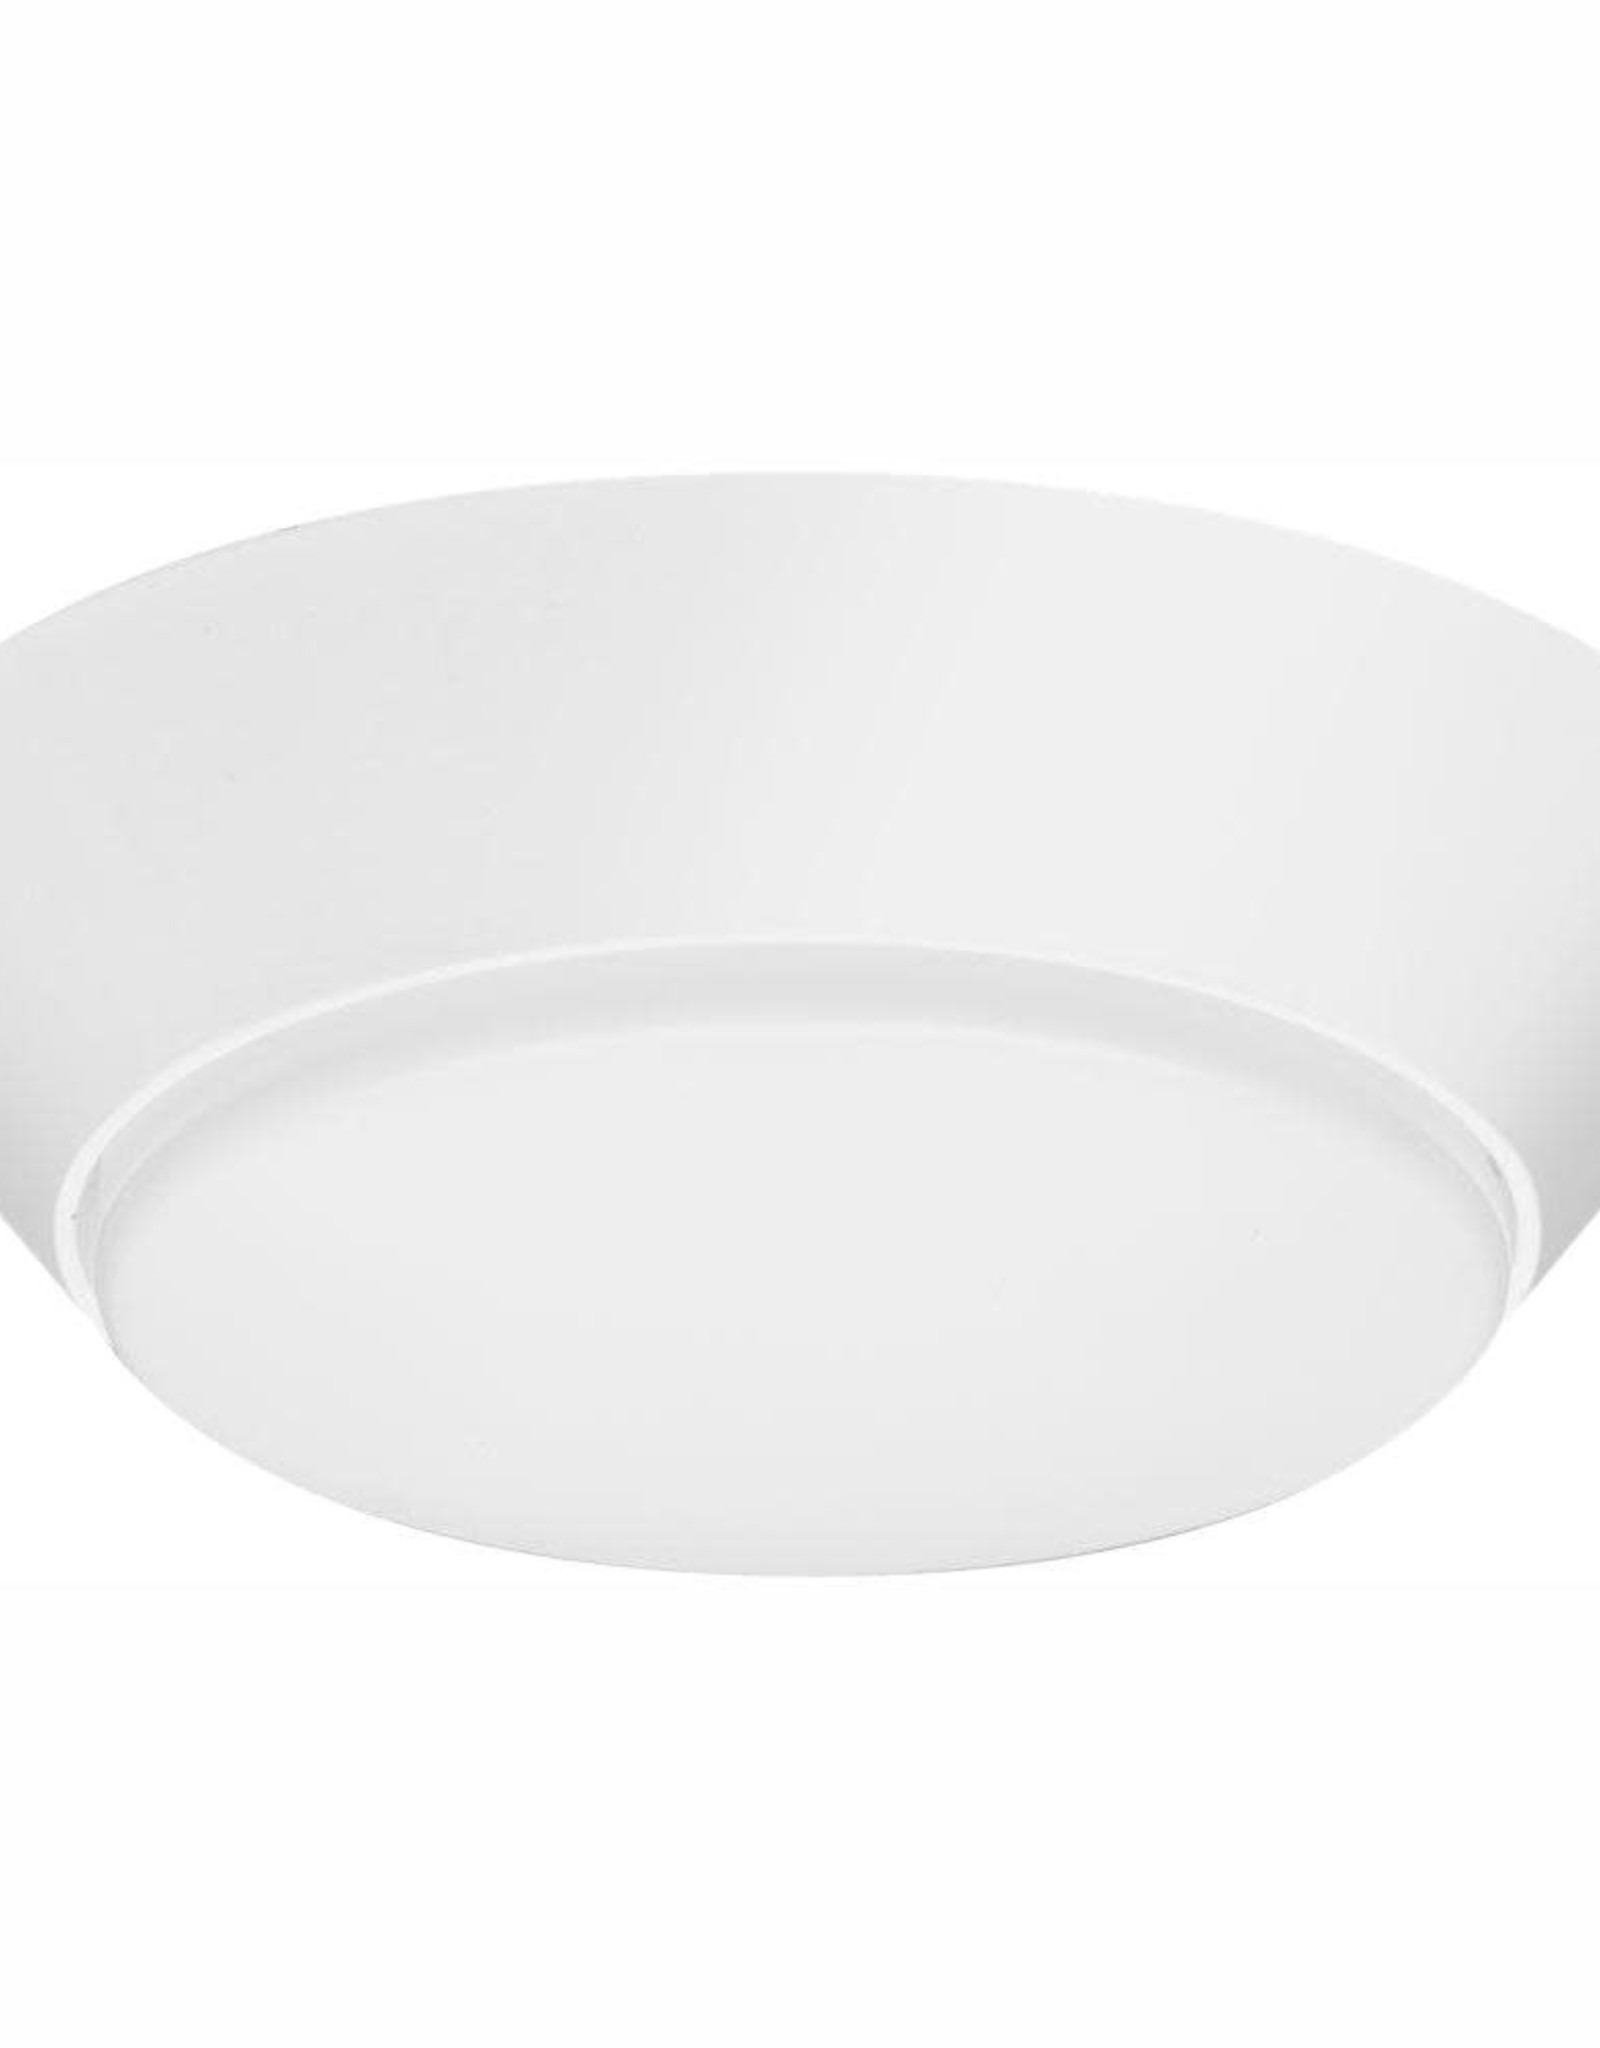 Lithonia Lighting Contractor Select Versi Lite Series 7 in. 3000K Cool White Integrated 642 Lumen LED Round Flush Mount Fixture